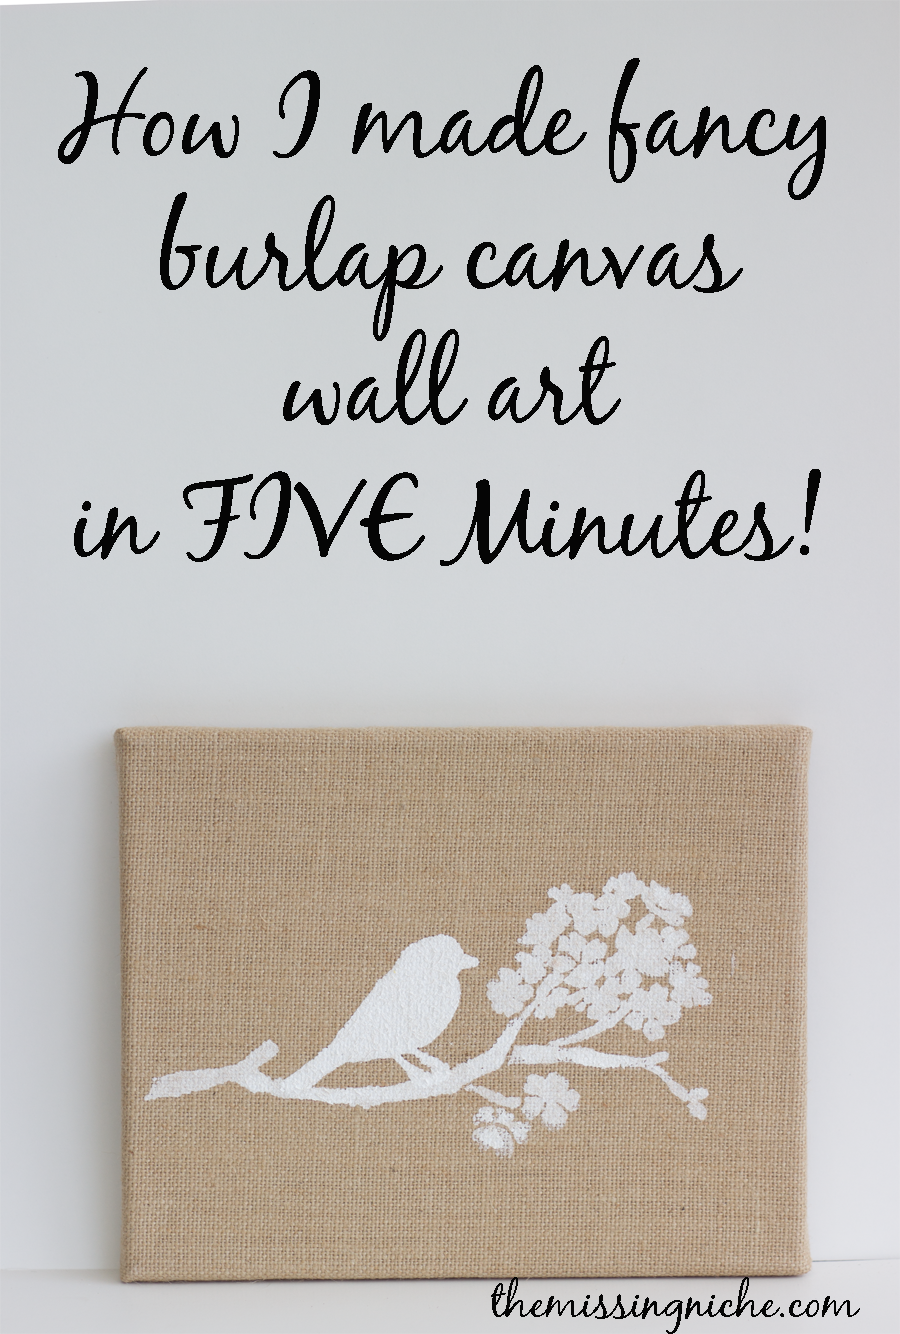 How i made fancy burlap canvas wall art in five minutes the